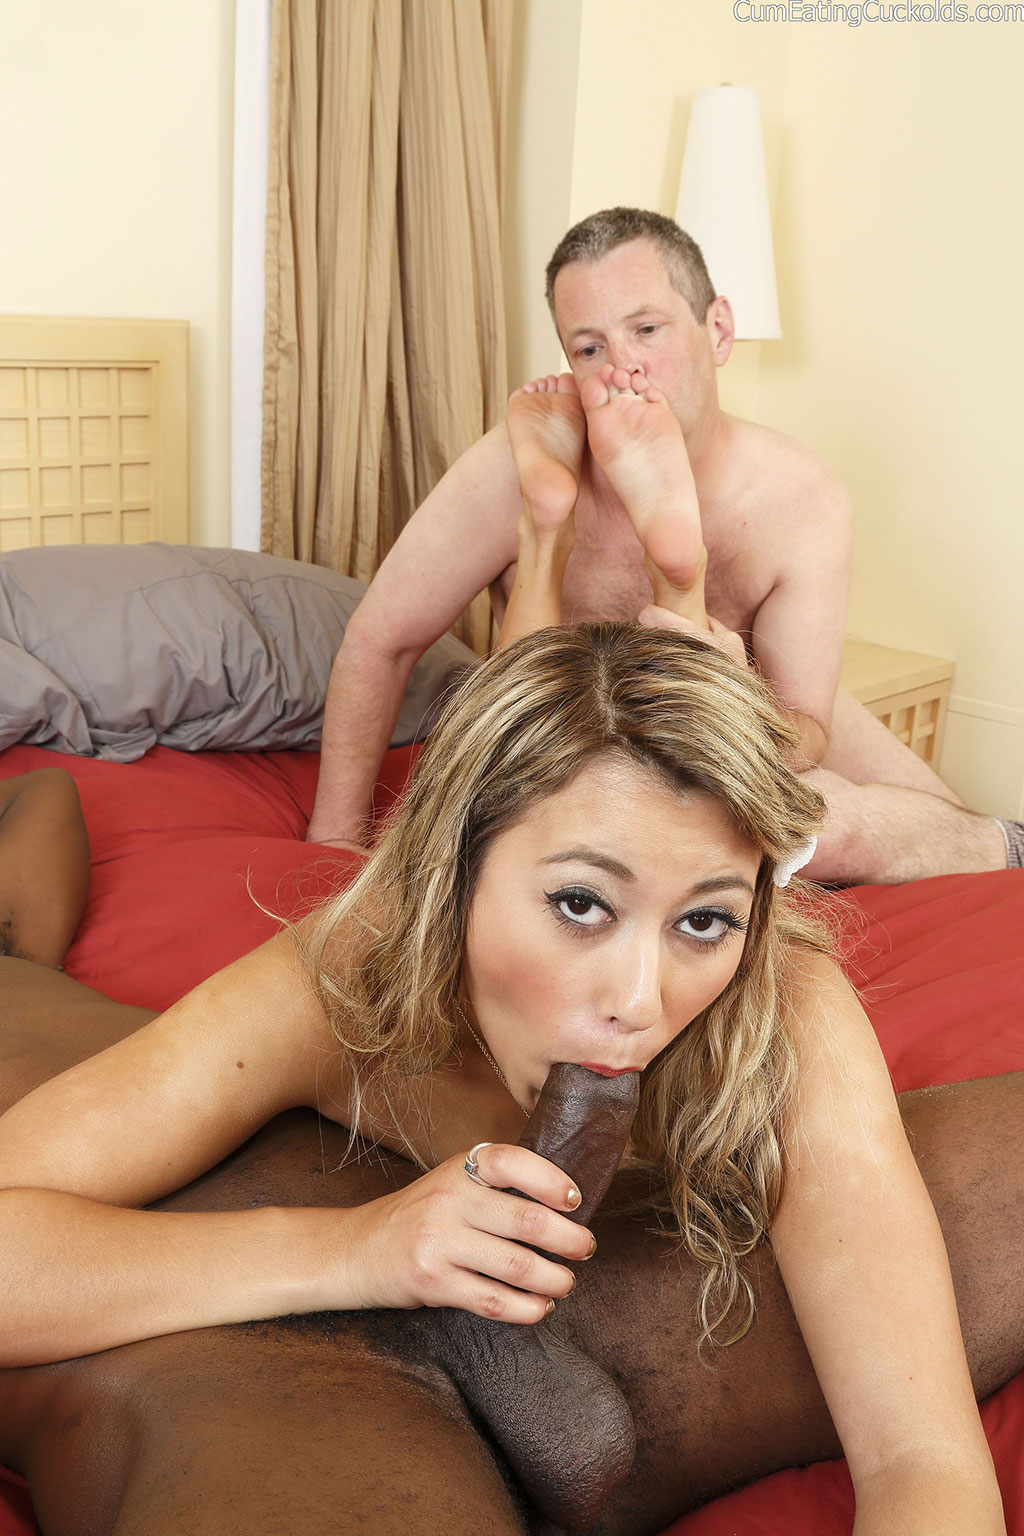 free porn samples of cum eating cuckolds - insane cuckold eating cum